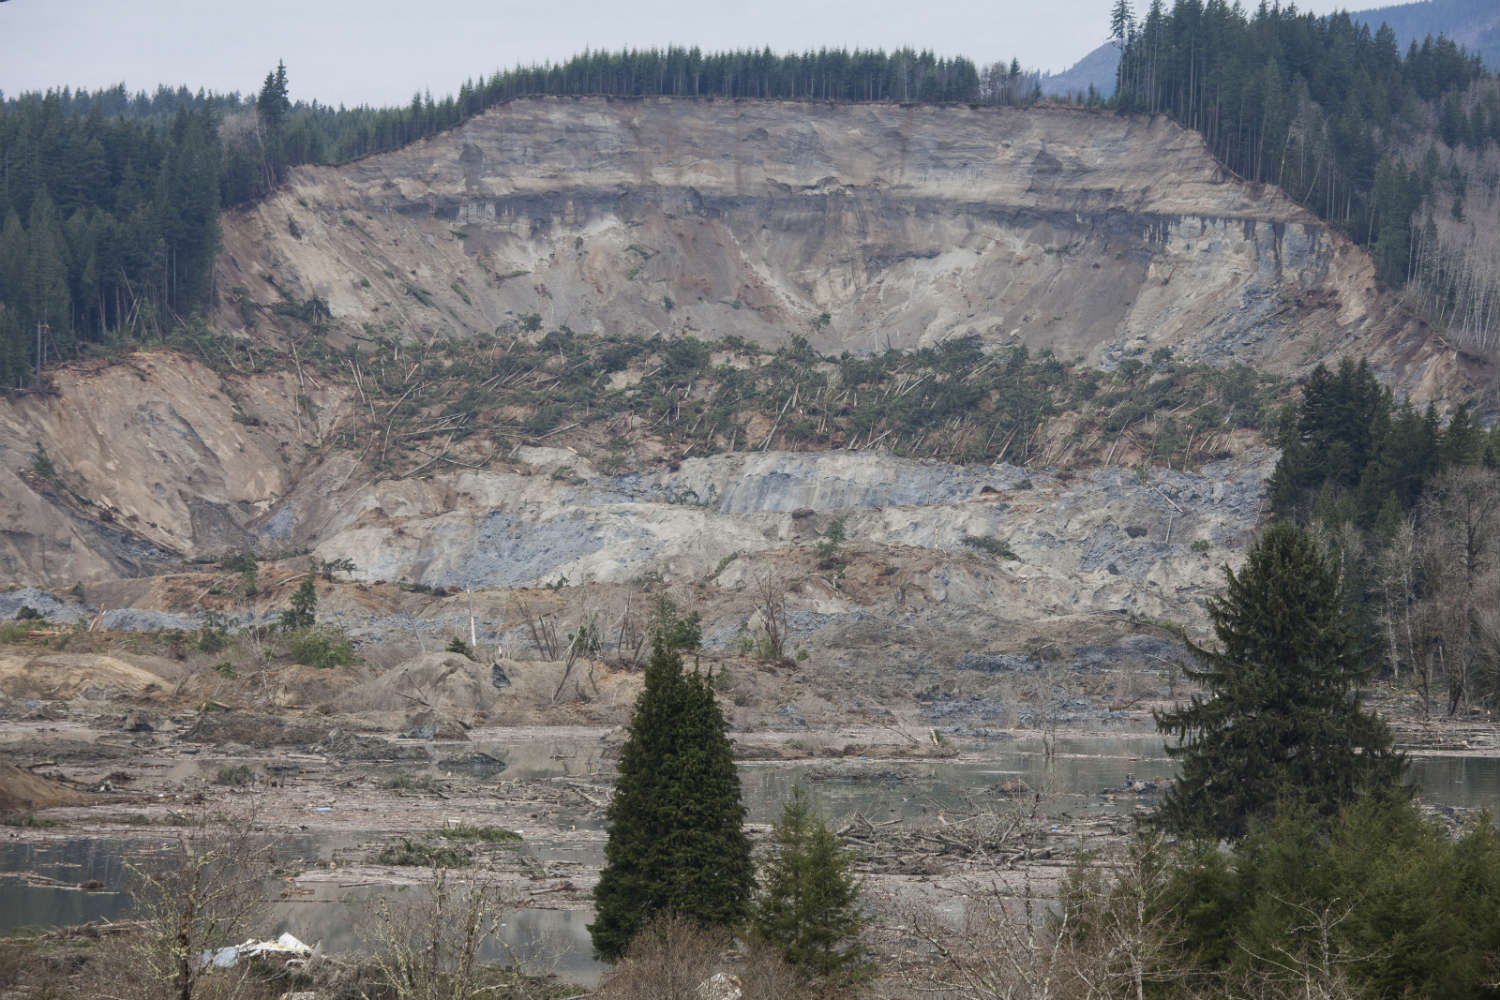 A massive landslide near Oso, Washington killed at least 16 people, with far more still missing